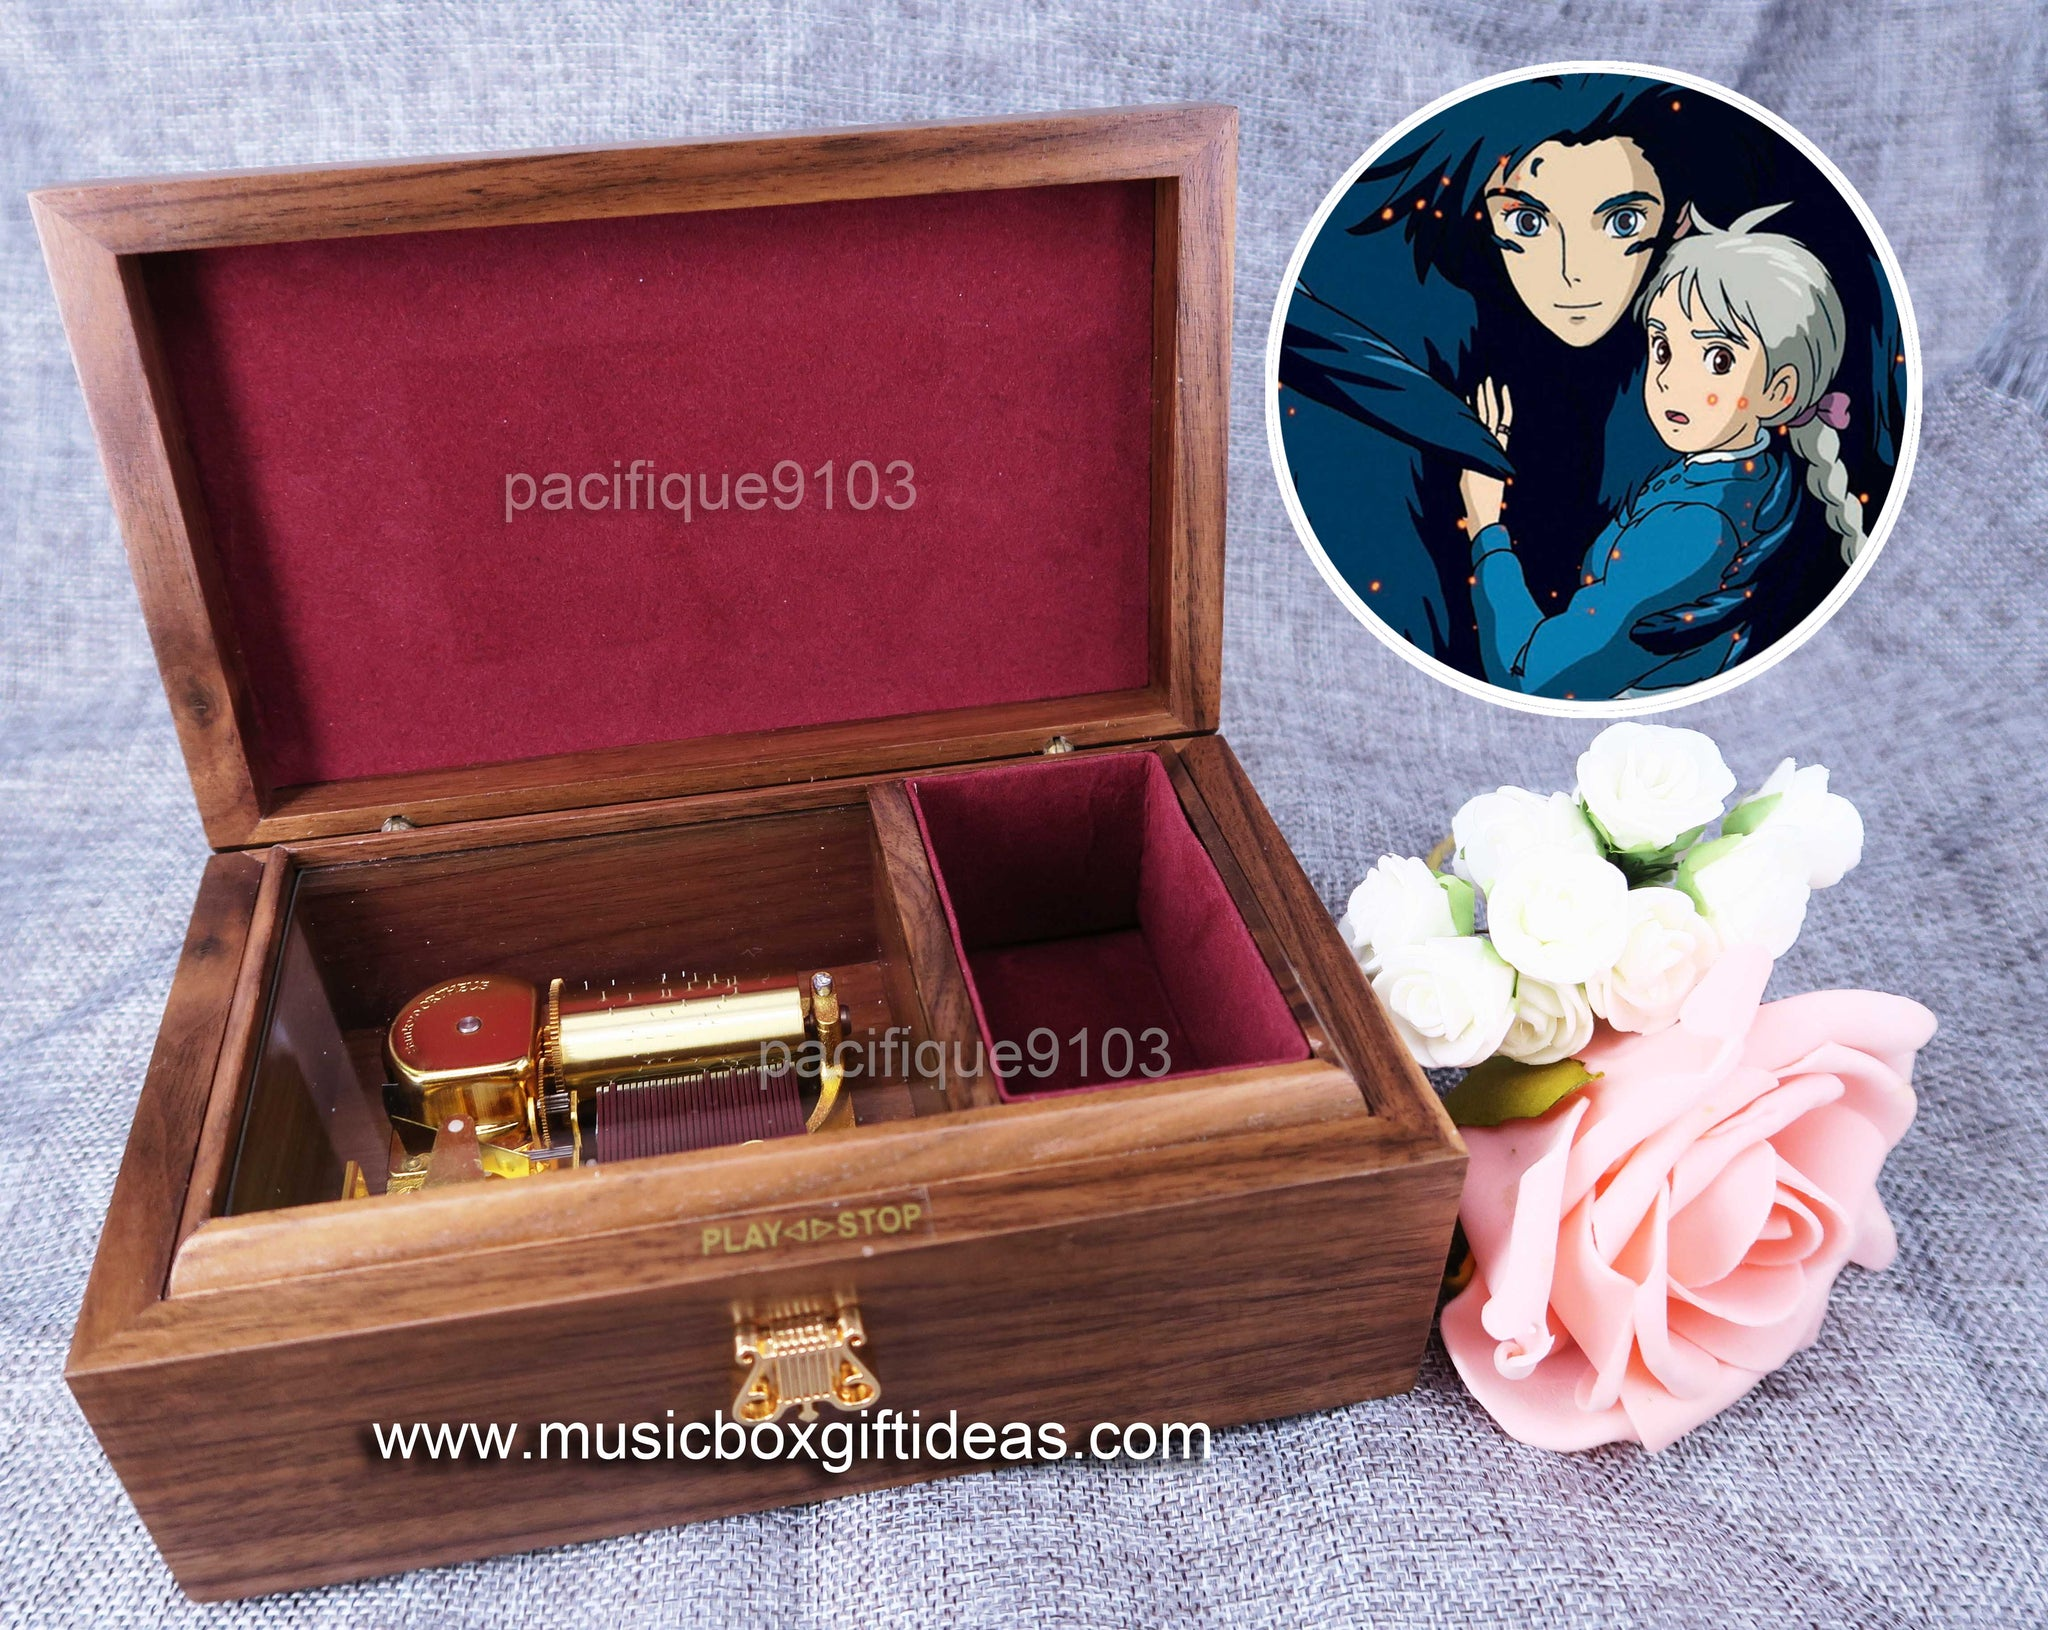 Howl's Moving Castle Merry Go Round of Life from Studio Ghibli 30-Note Wind-Up Music Box Gift (Wooden) - Music Box Gift Ideas